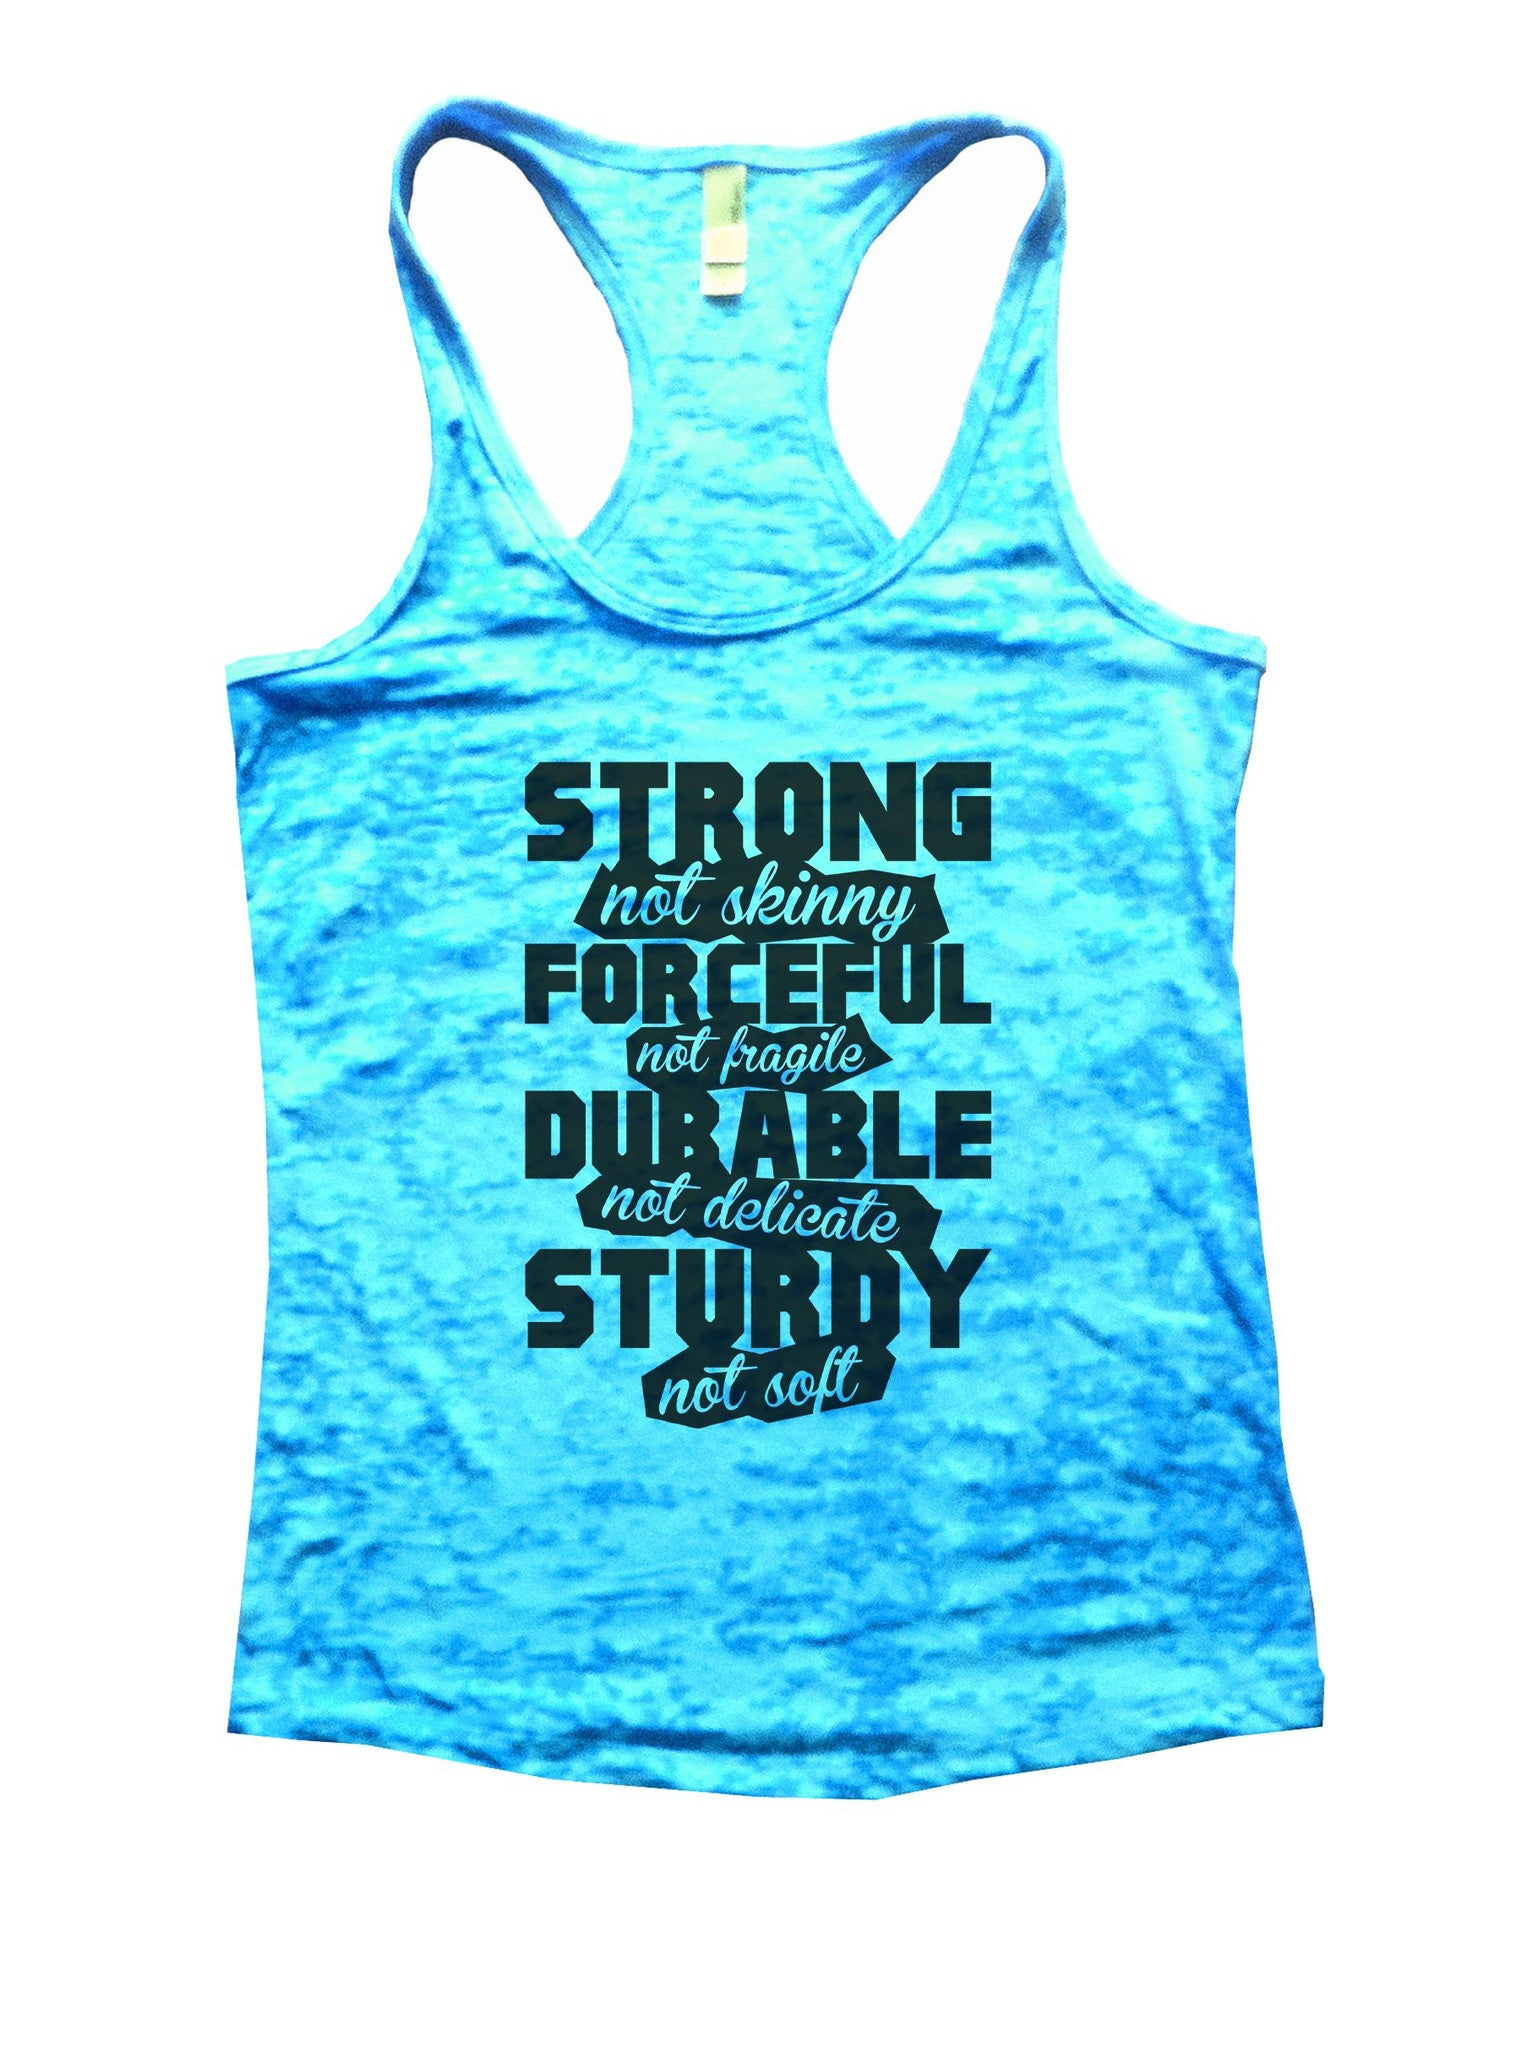 Strong Not Skinny Forceful Not Fragile Durable Not Delicate Sturdy Not Soft Burnout Tank Top By BurnoutTankTops.com - 845 - Funny Shirts Tank Tops Burnouts and Triblends  - 4